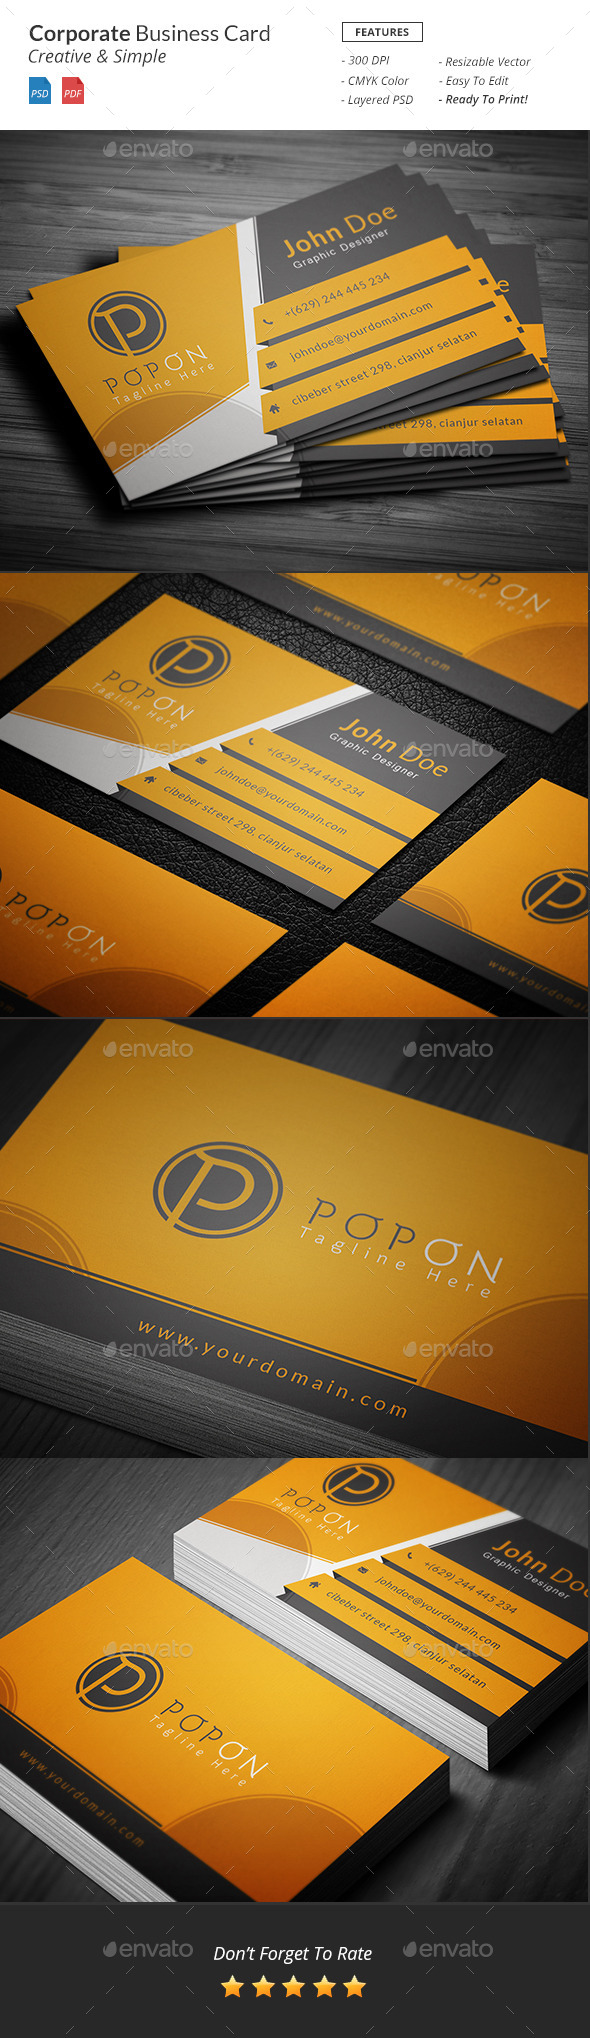 GraphicRiver Corporate business card template 10771765